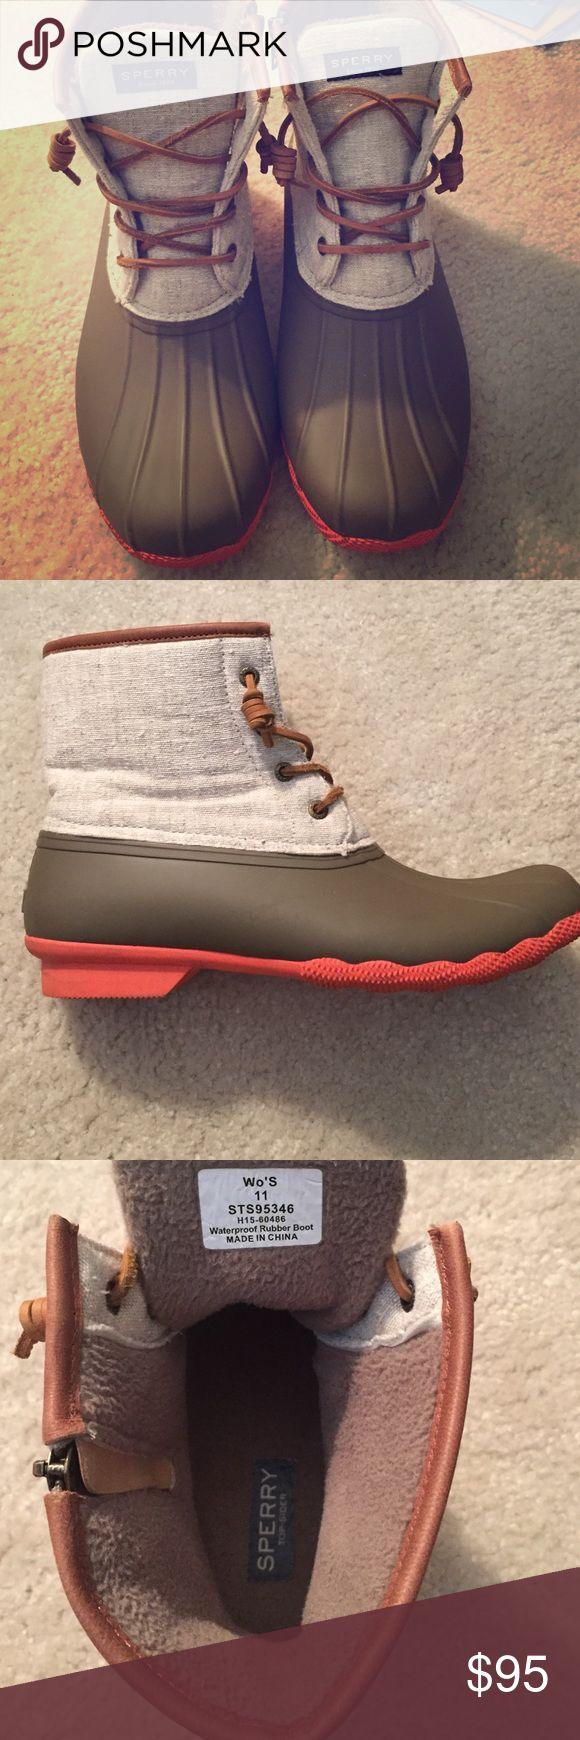 Sperry duck boots Excellent condition sperry duck boots, only worn a handful of times. The only signs of wear are on the bottoms of the shoes. The color is taupe and the bottom is a coral color. Sperry Shoes Winter & Rain Boots